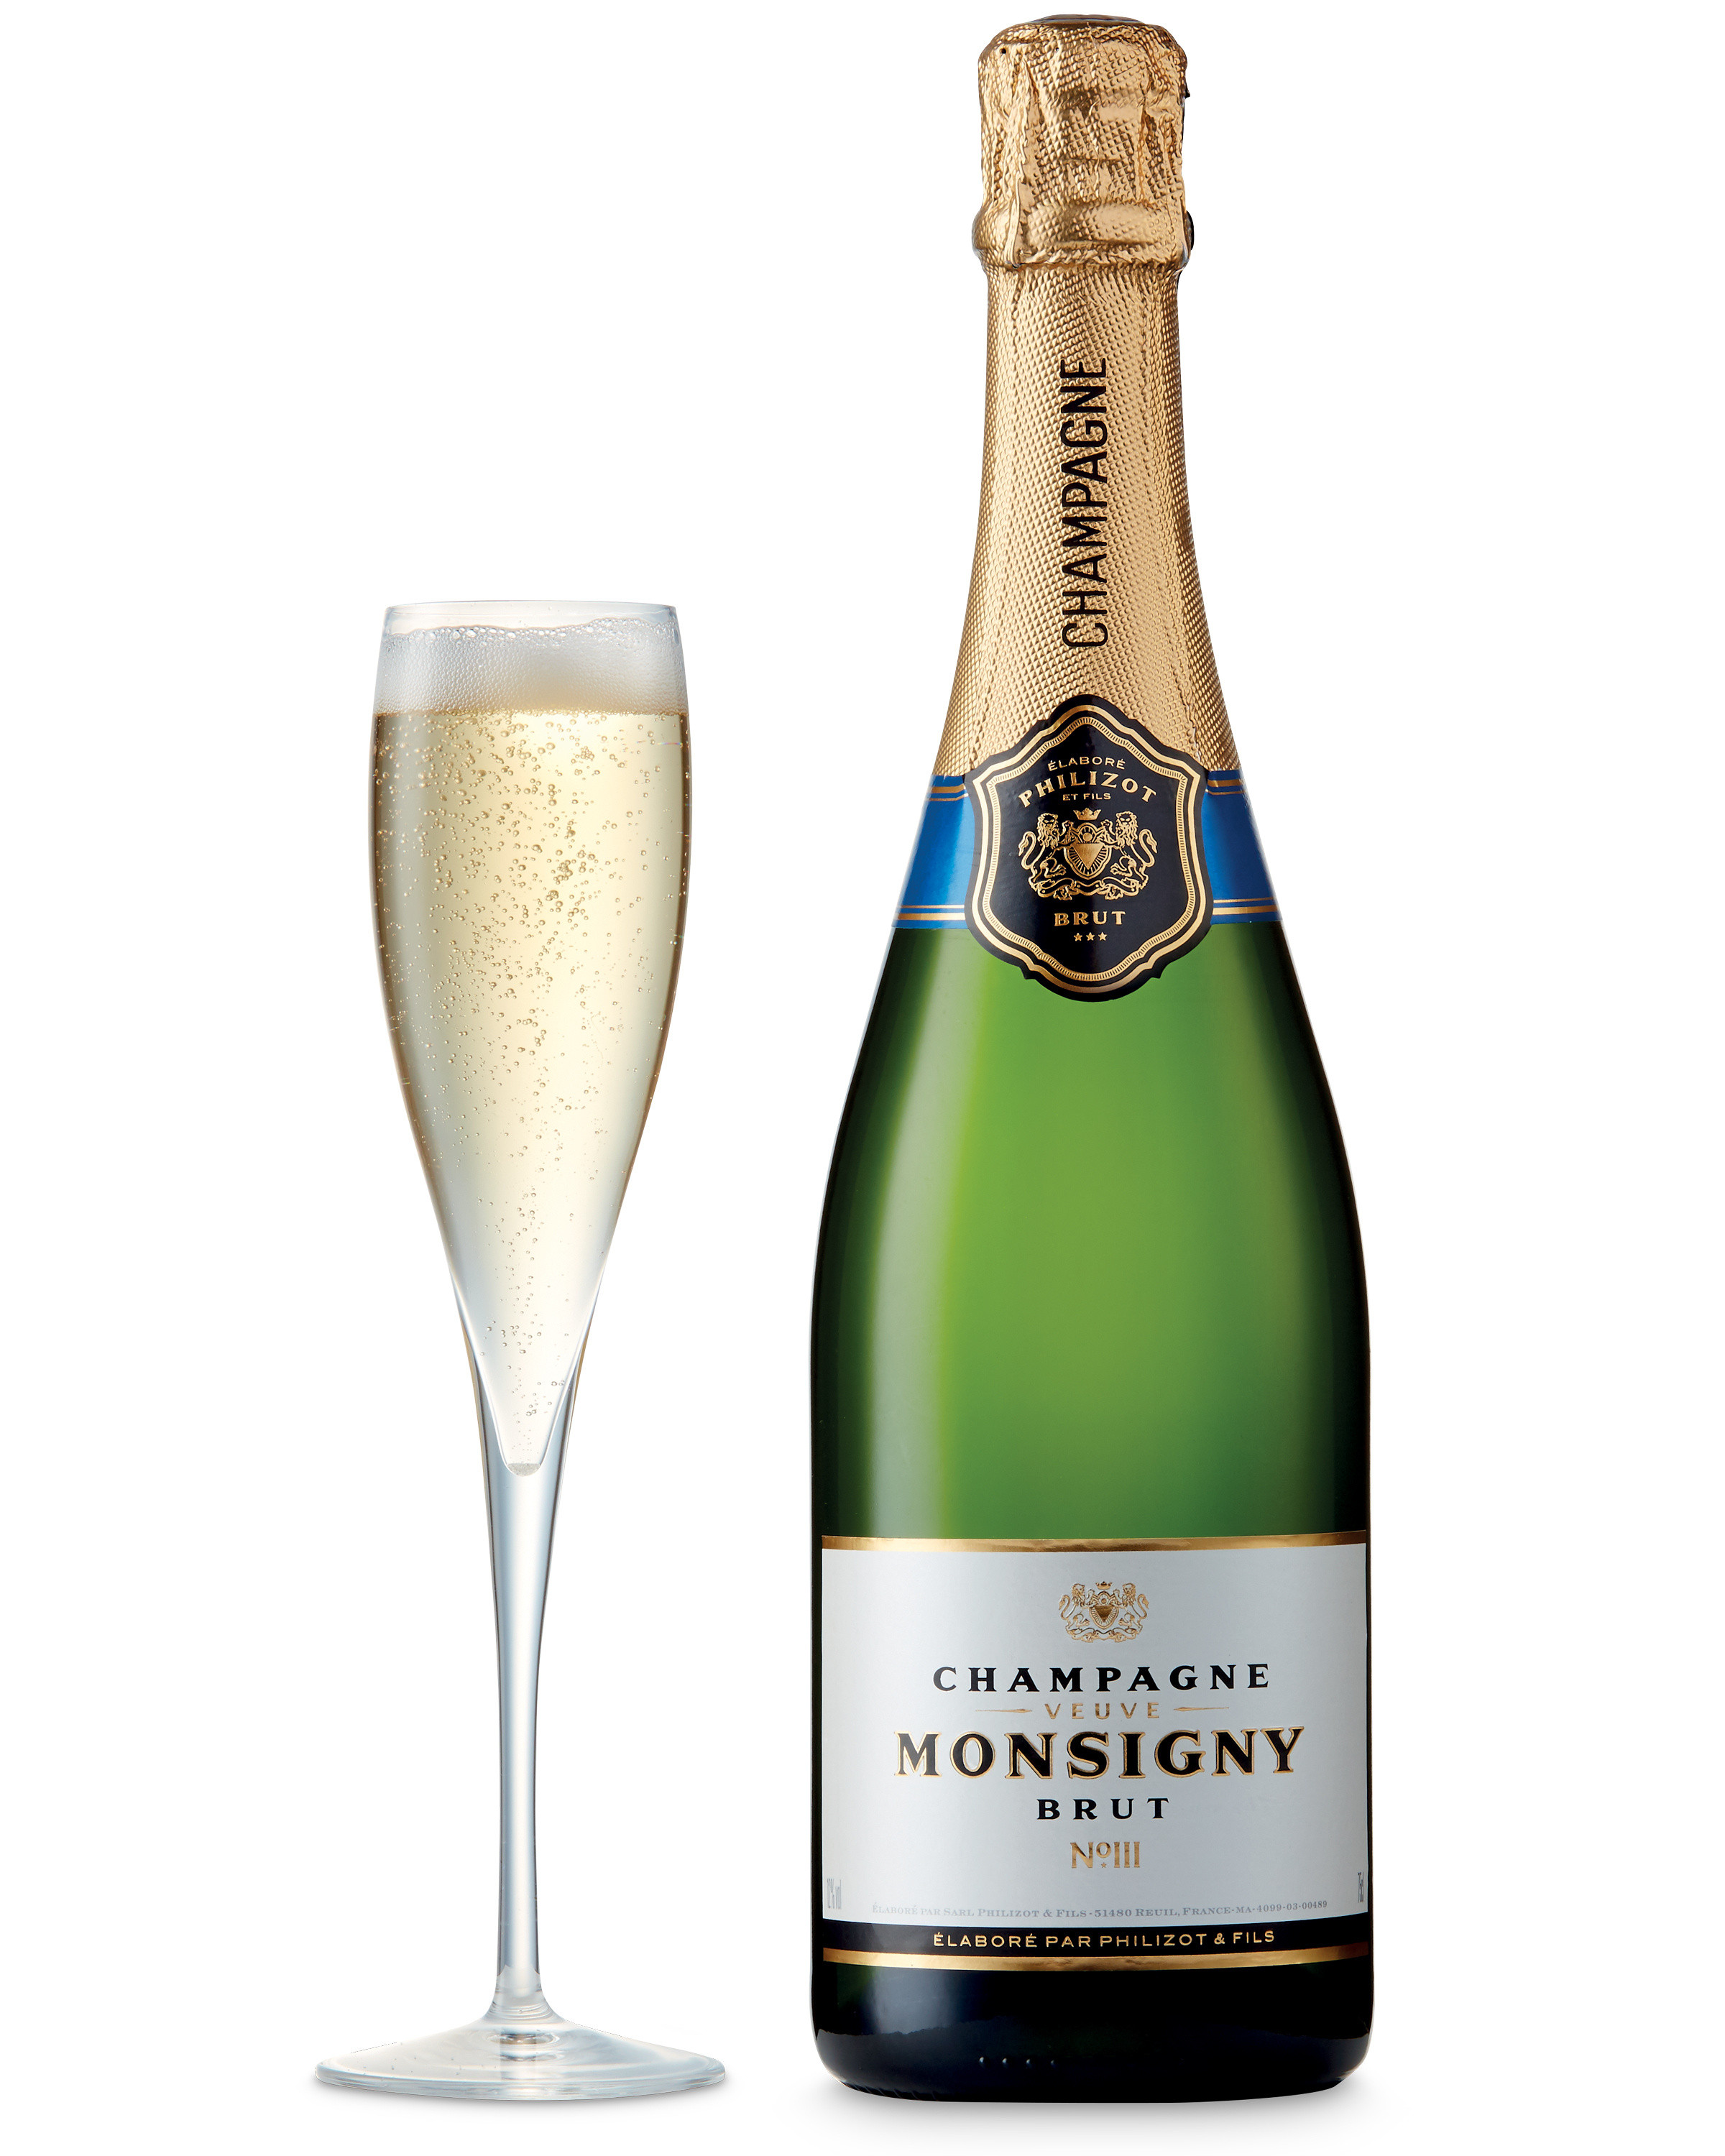 Monsigny Brut Champagne from Aldi